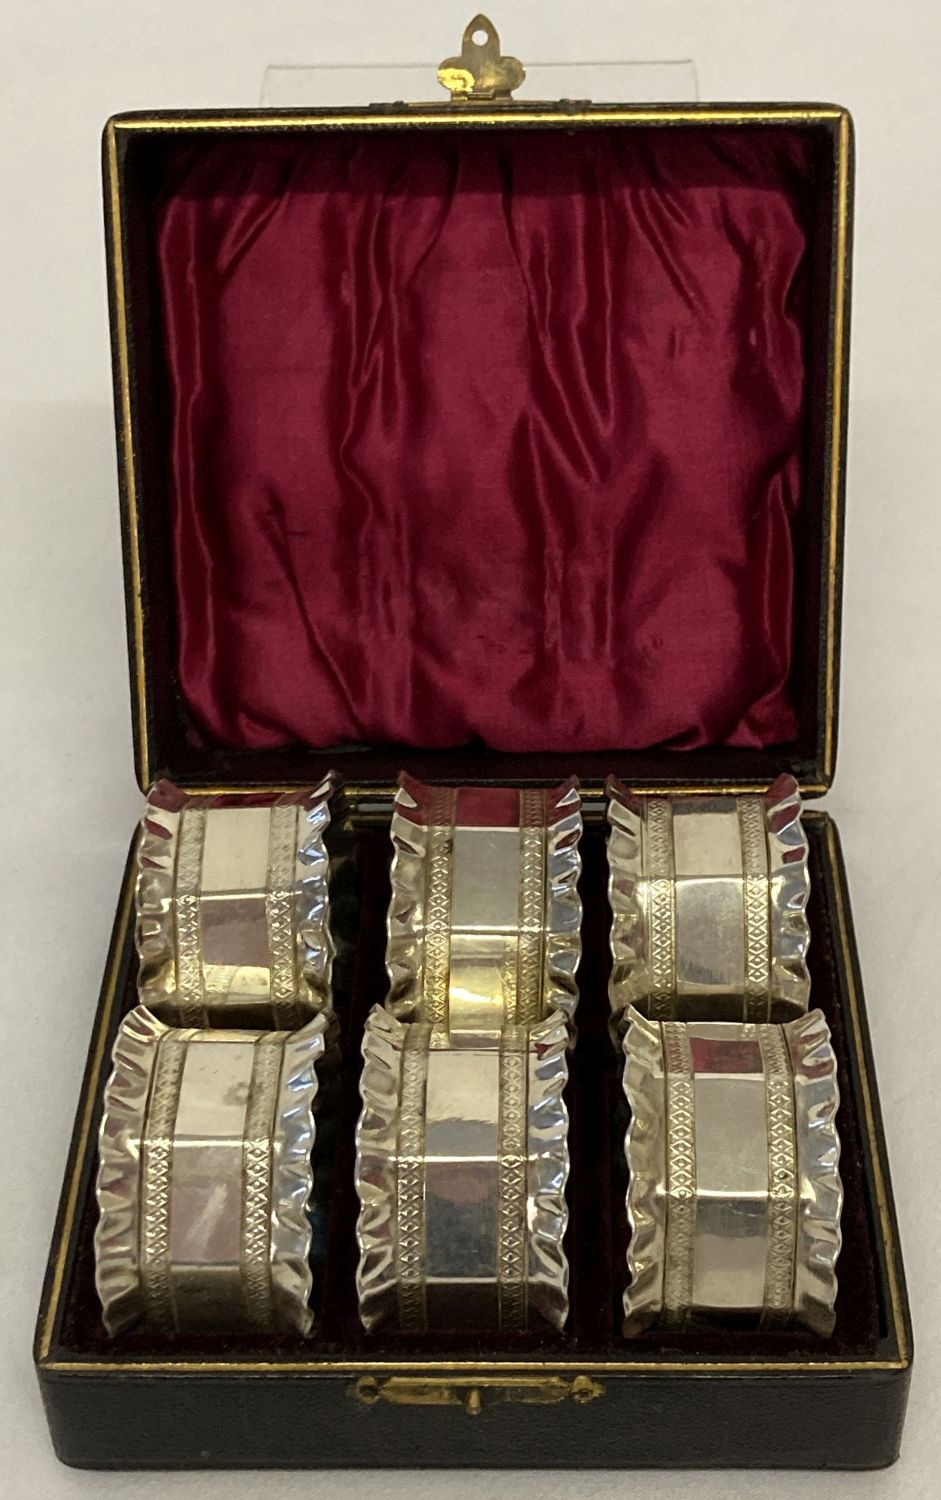 A boxed set of vintage silver plated, decorative napkin rings with engraved borders & frilled rims.